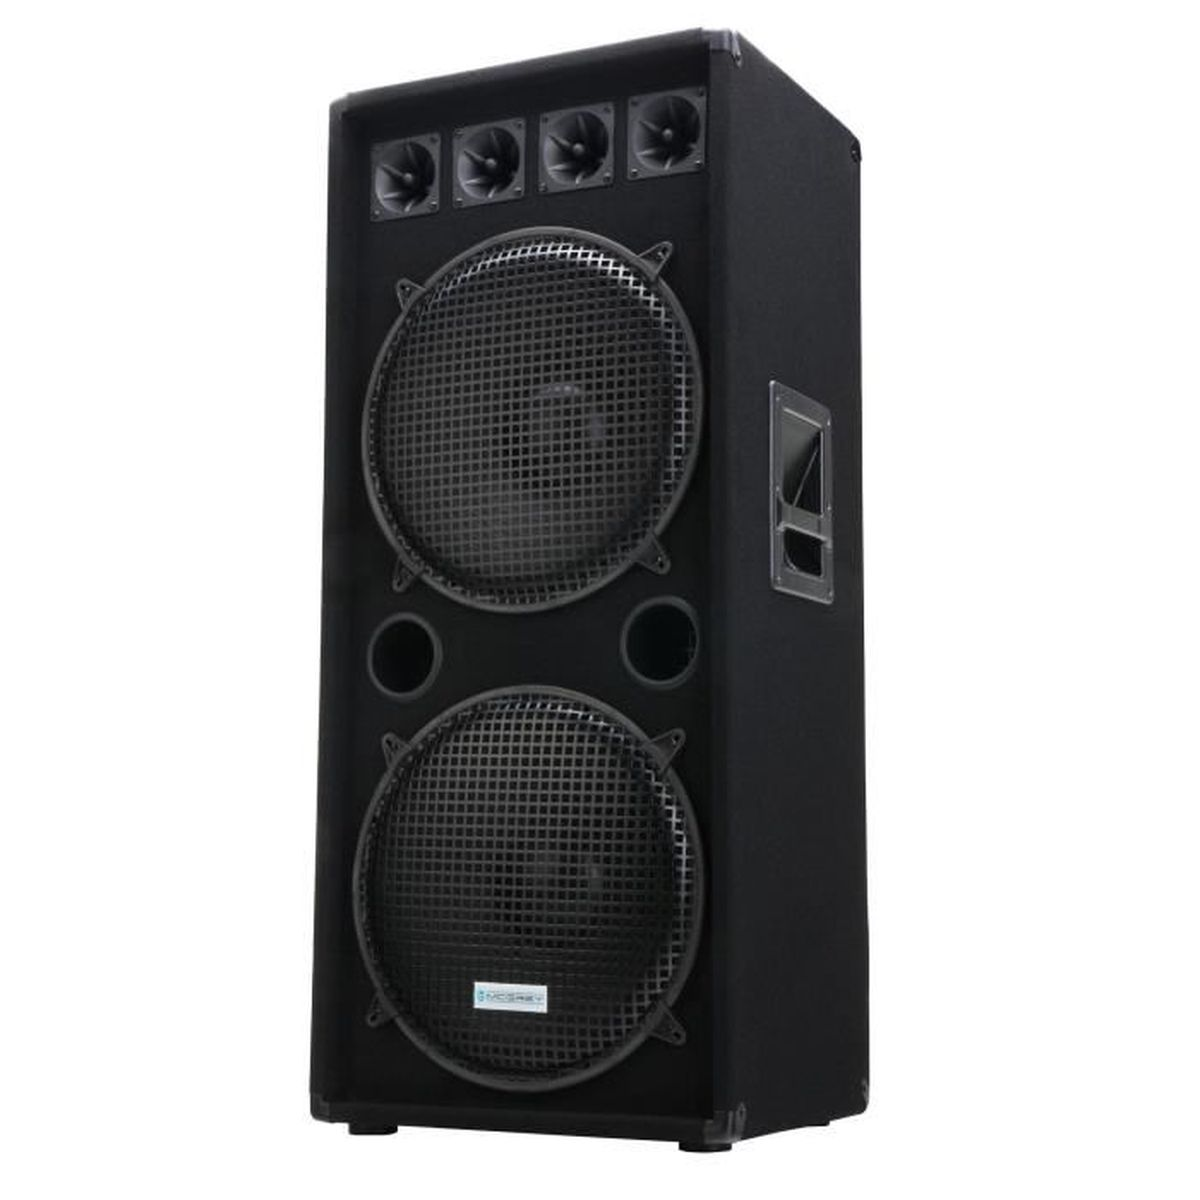 mcgrey dj 2522 enceintes de basement party dj 1500w enceinte et retour avis et prix pas cher. Black Bedroom Furniture Sets. Home Design Ideas